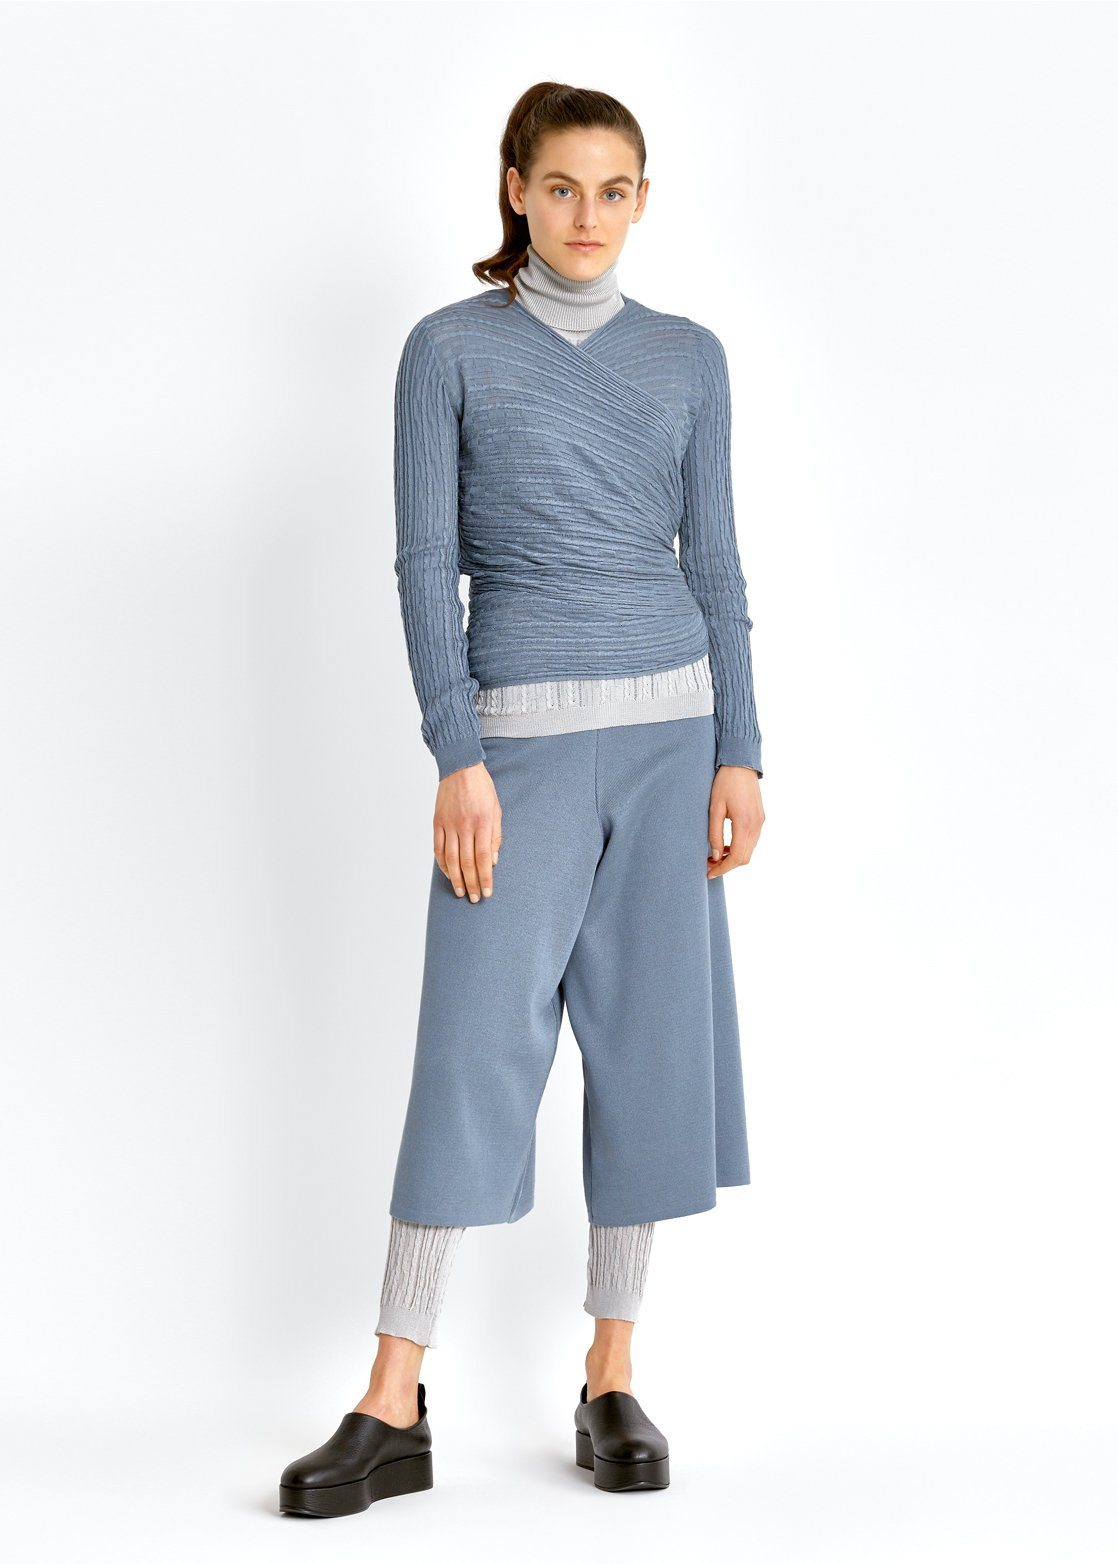 Pants - How Are You Cashmere Blend Pants